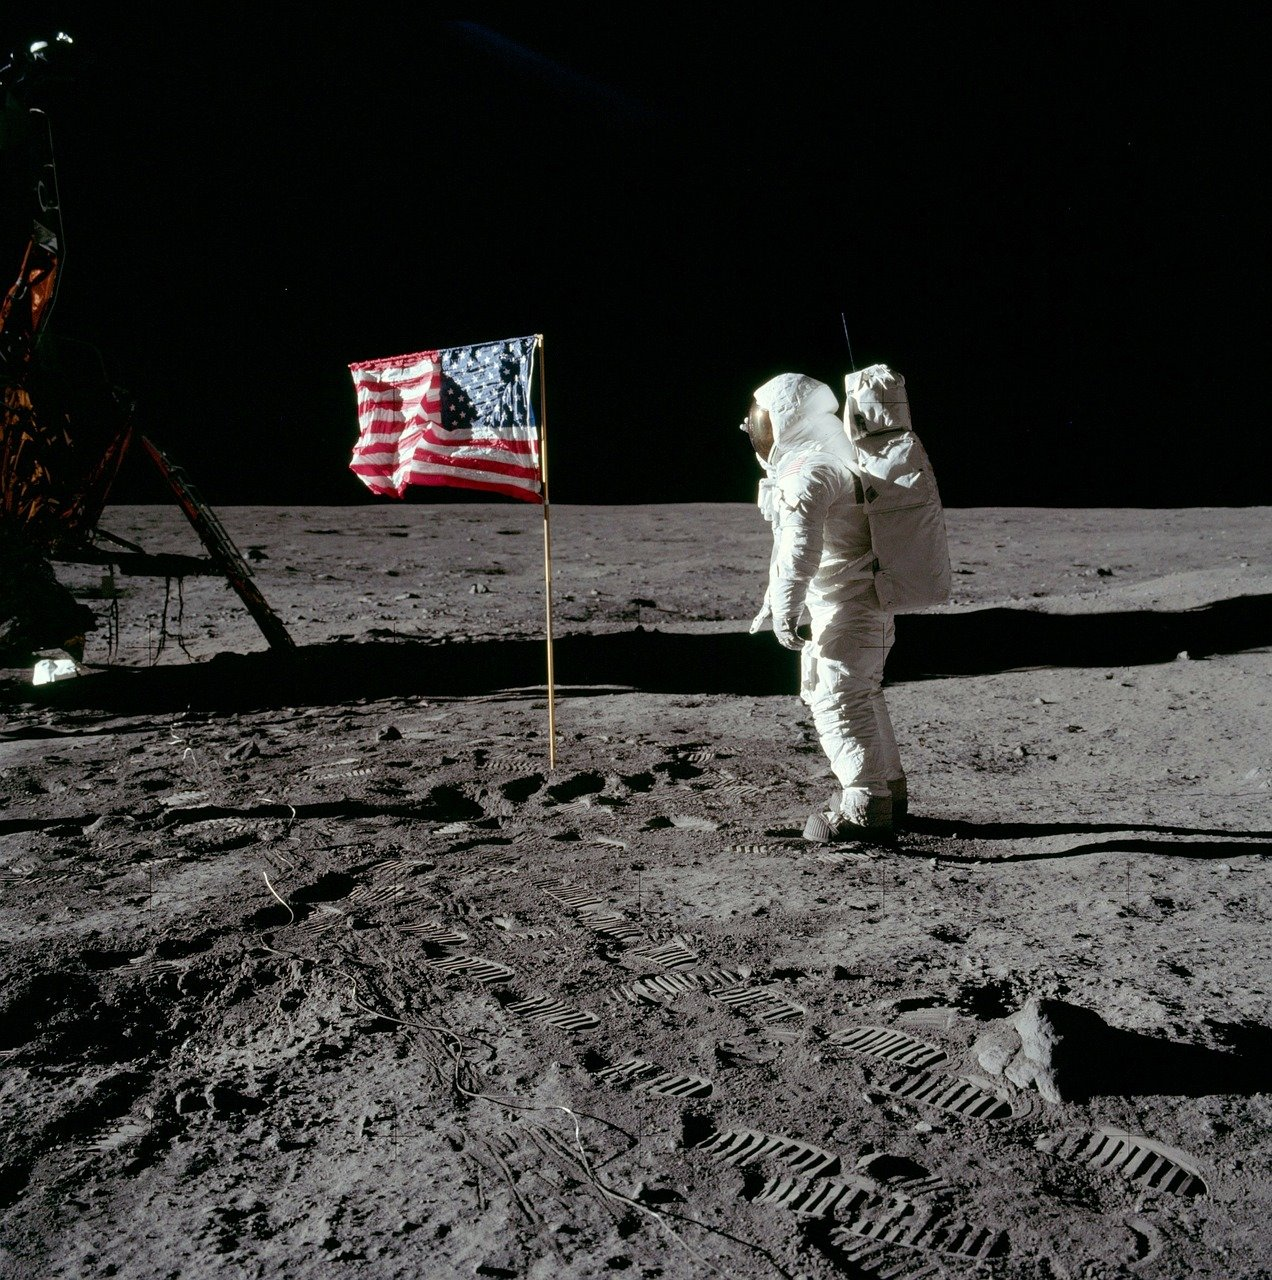 Moon Landing Buzz Aldrin America - Free photo on Pixabay